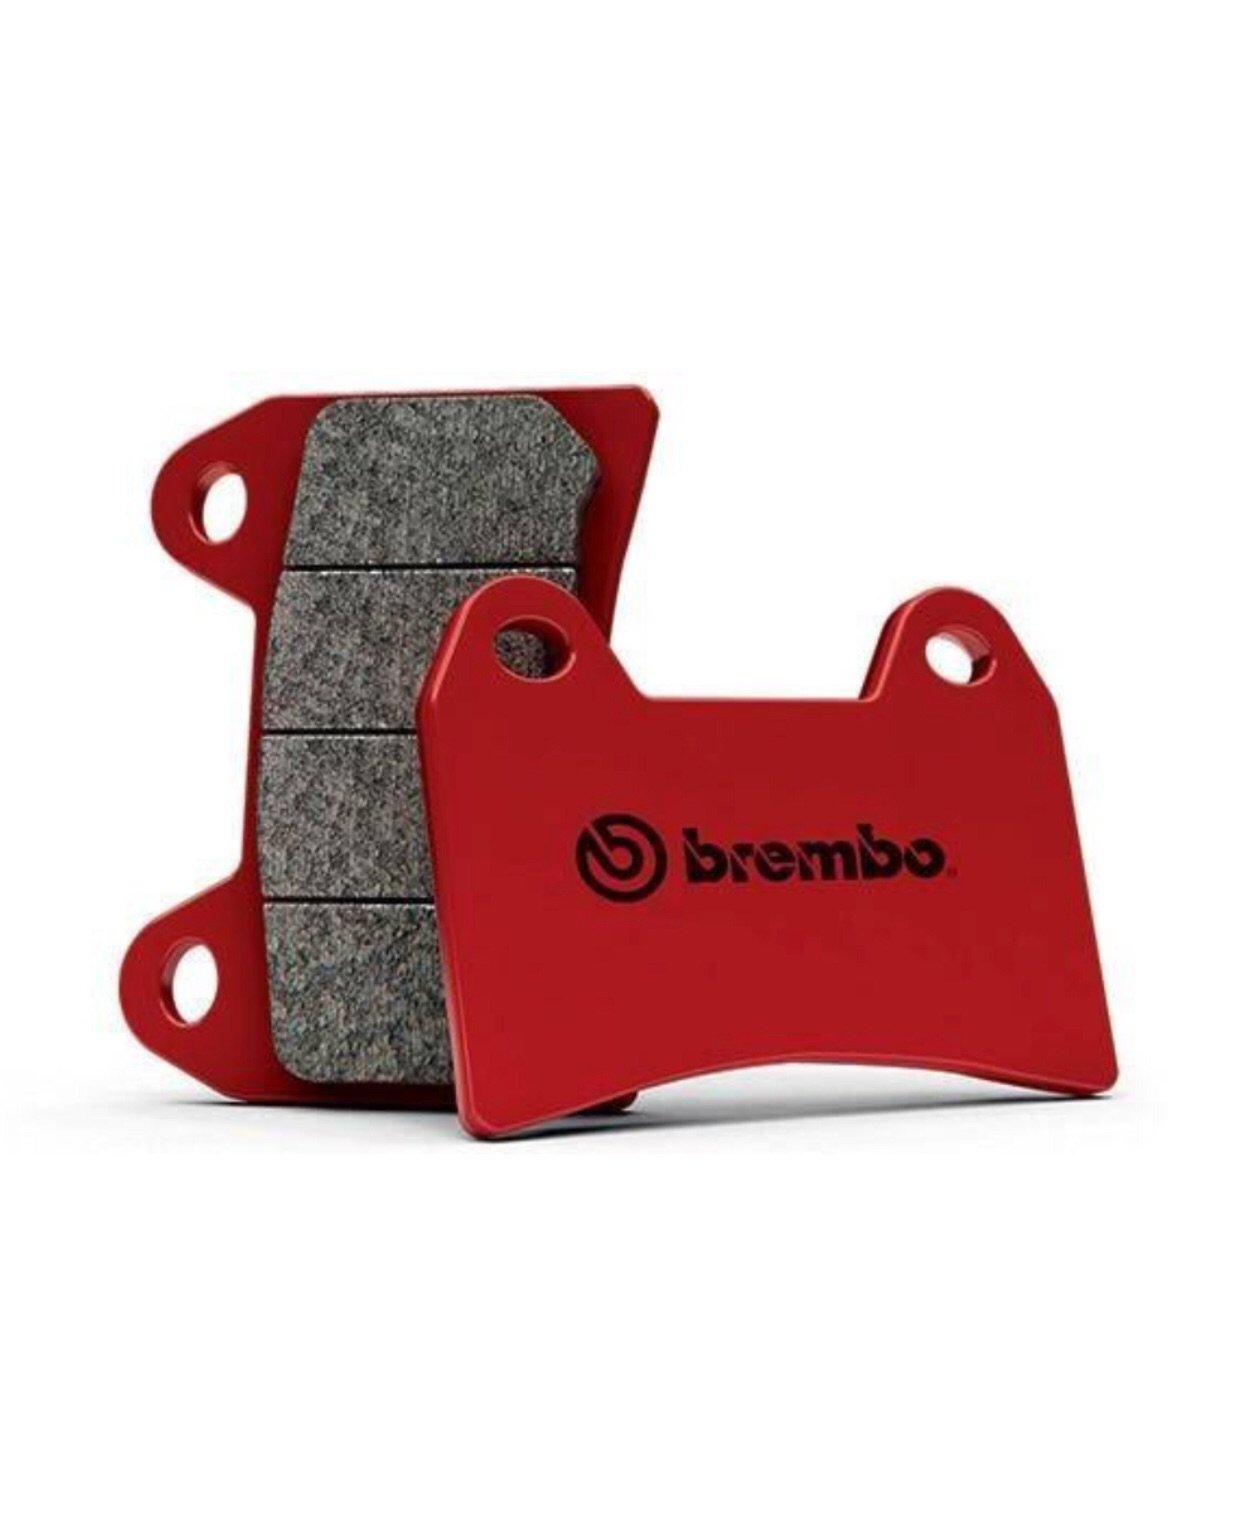 Aprilia, Brake Pads, Brembo - Race and Trackday Parts